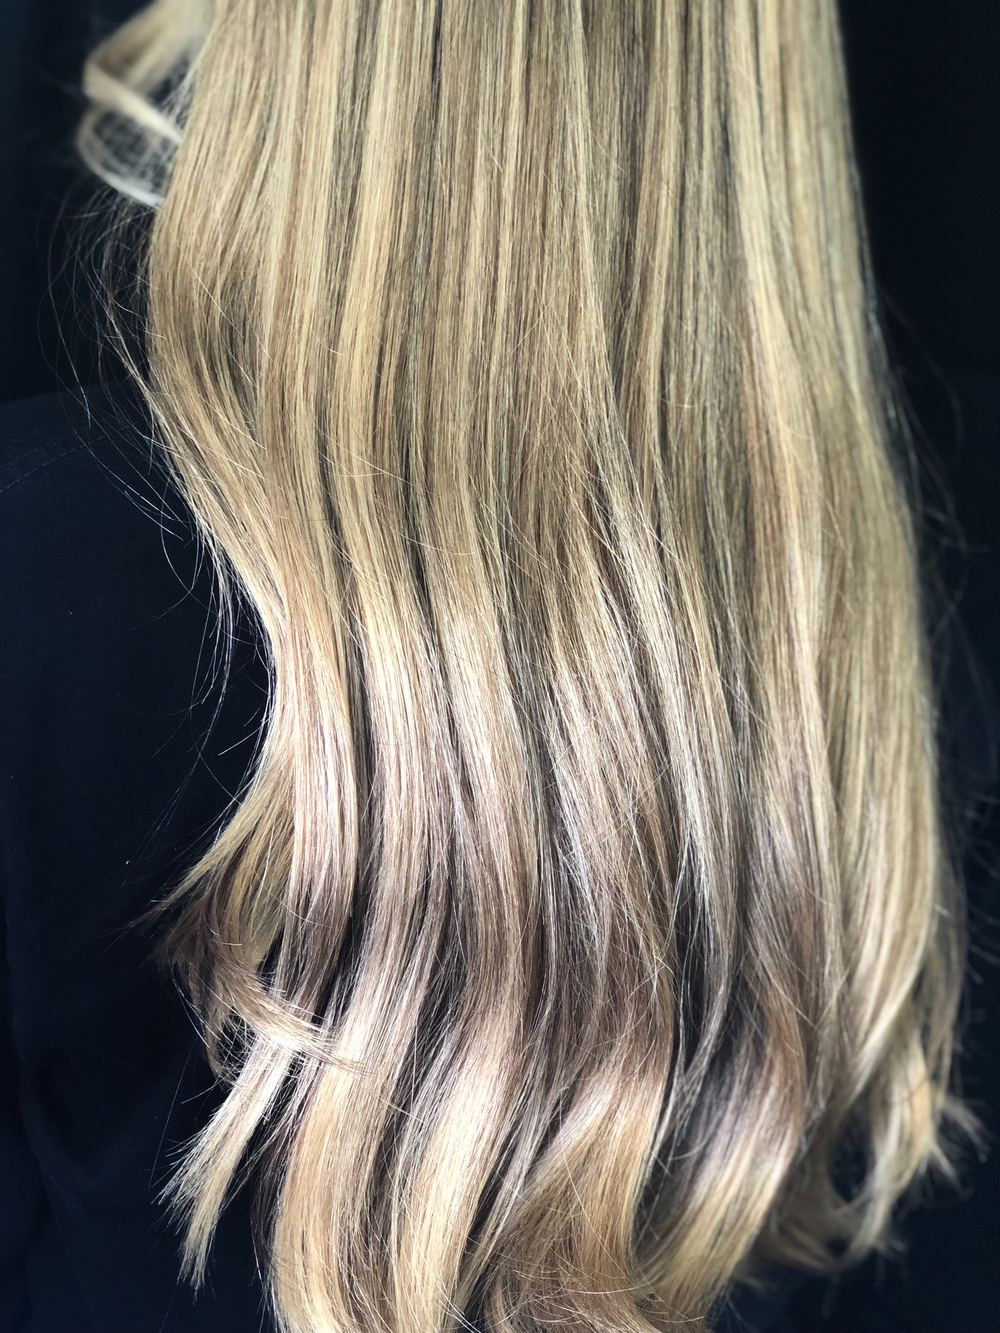 #Balayage #Hair #Highlights #Haircut #Stylist #Salon #Hairsalon #Blowout #Hairdresser #Colorist #Hairstylist #Haircolor #Retouch #Keratin